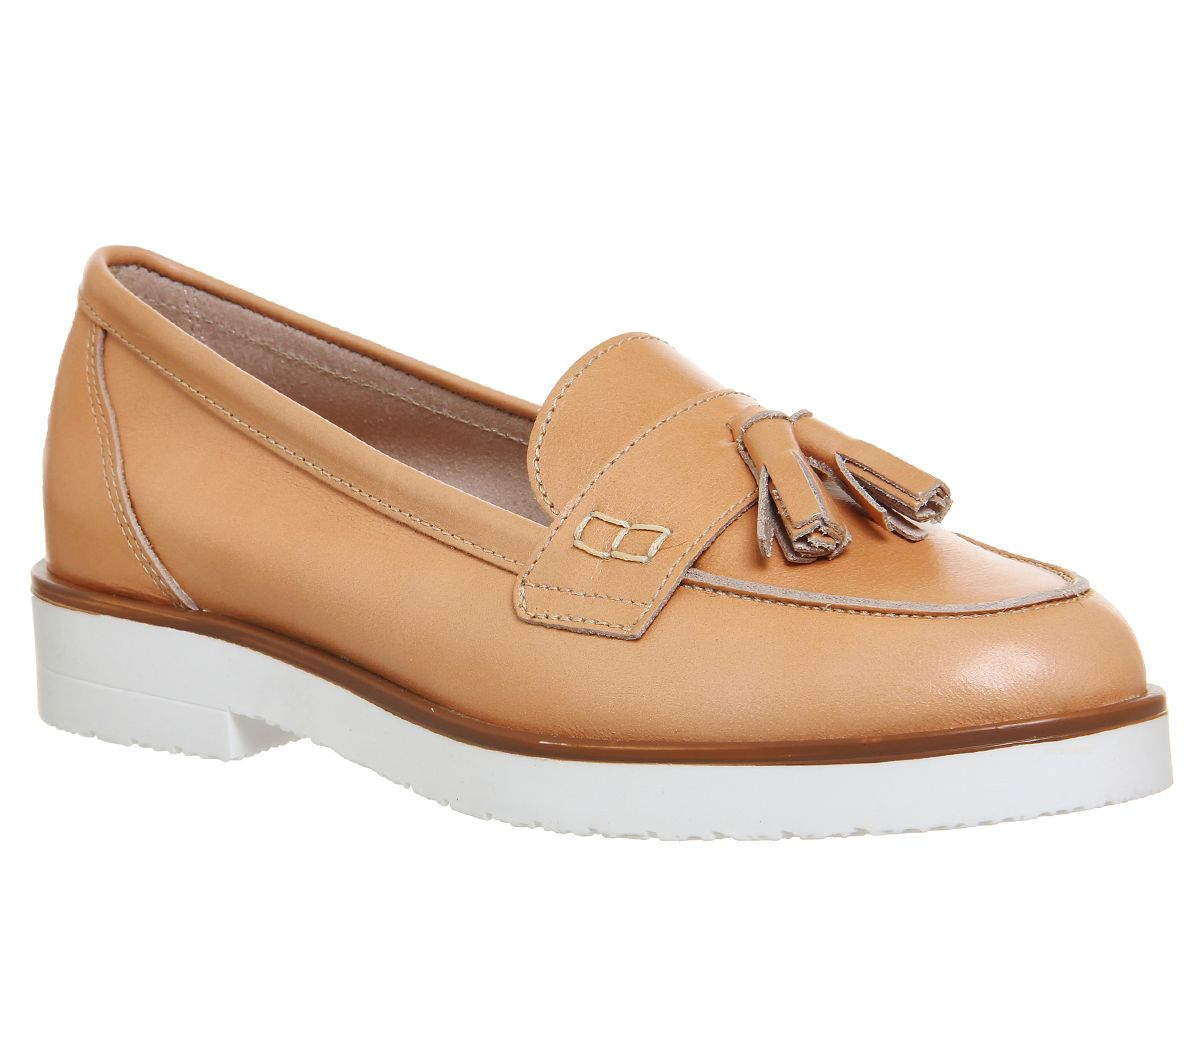 Office Frederick Loafers, Nude